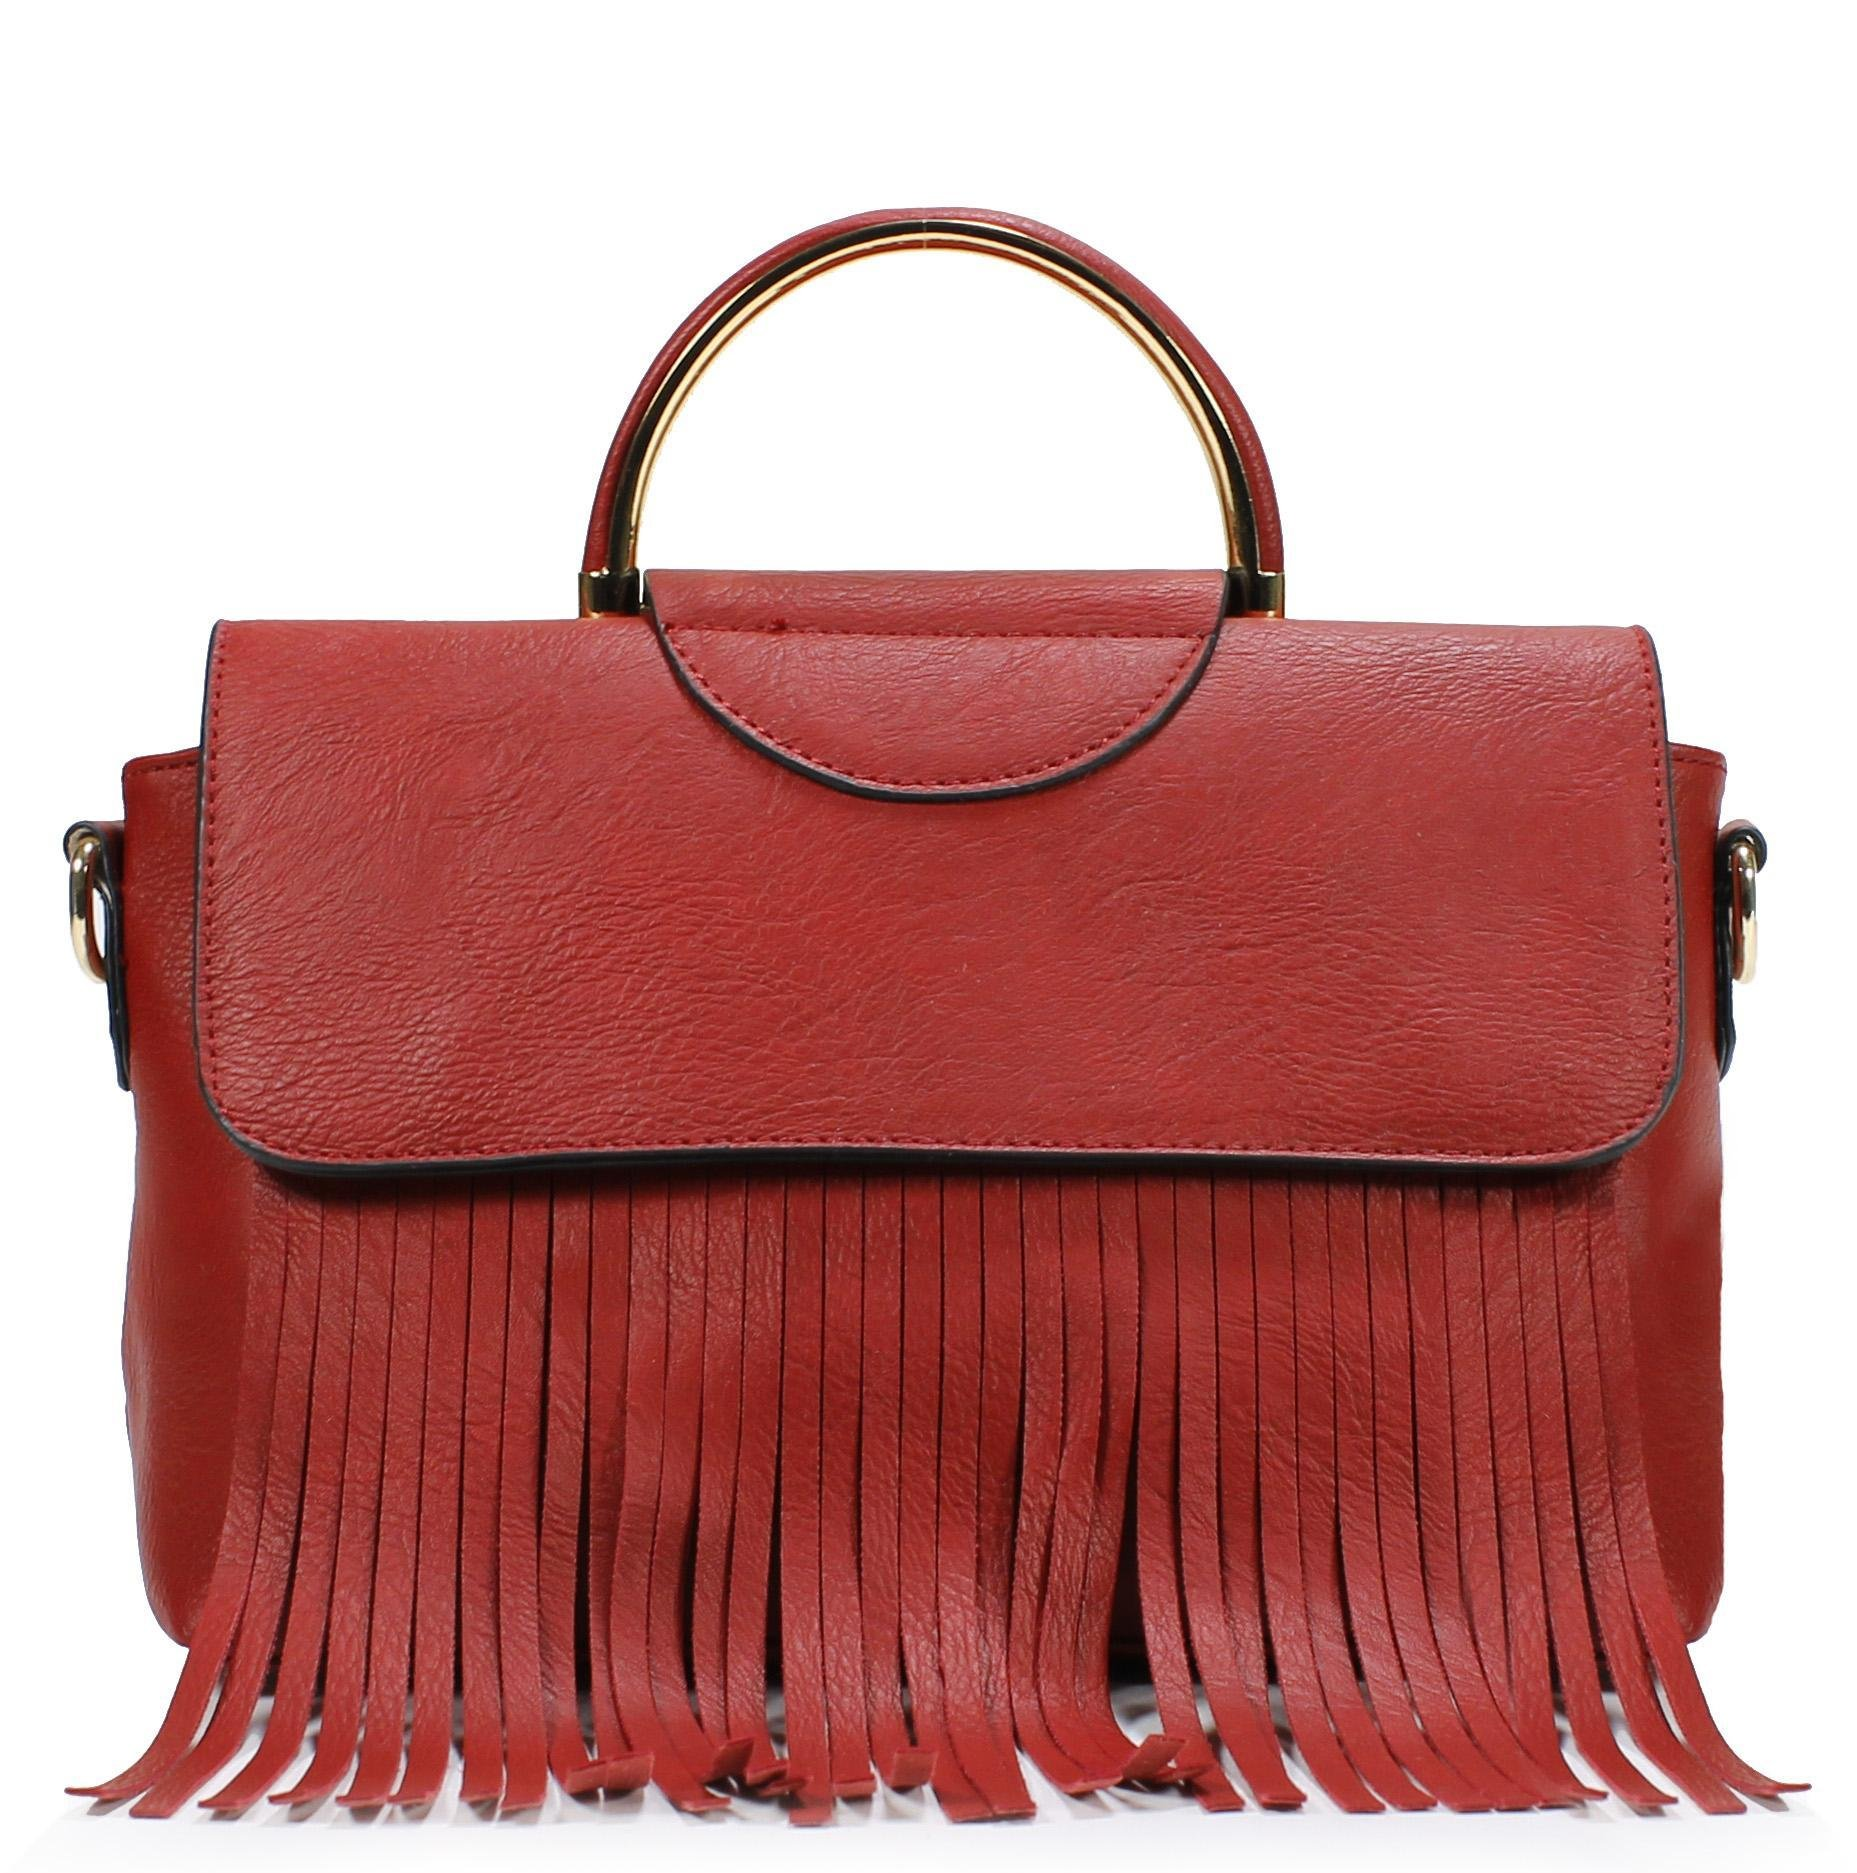 Scarleton Stylish Amerind Style Satchel H185810 - Red